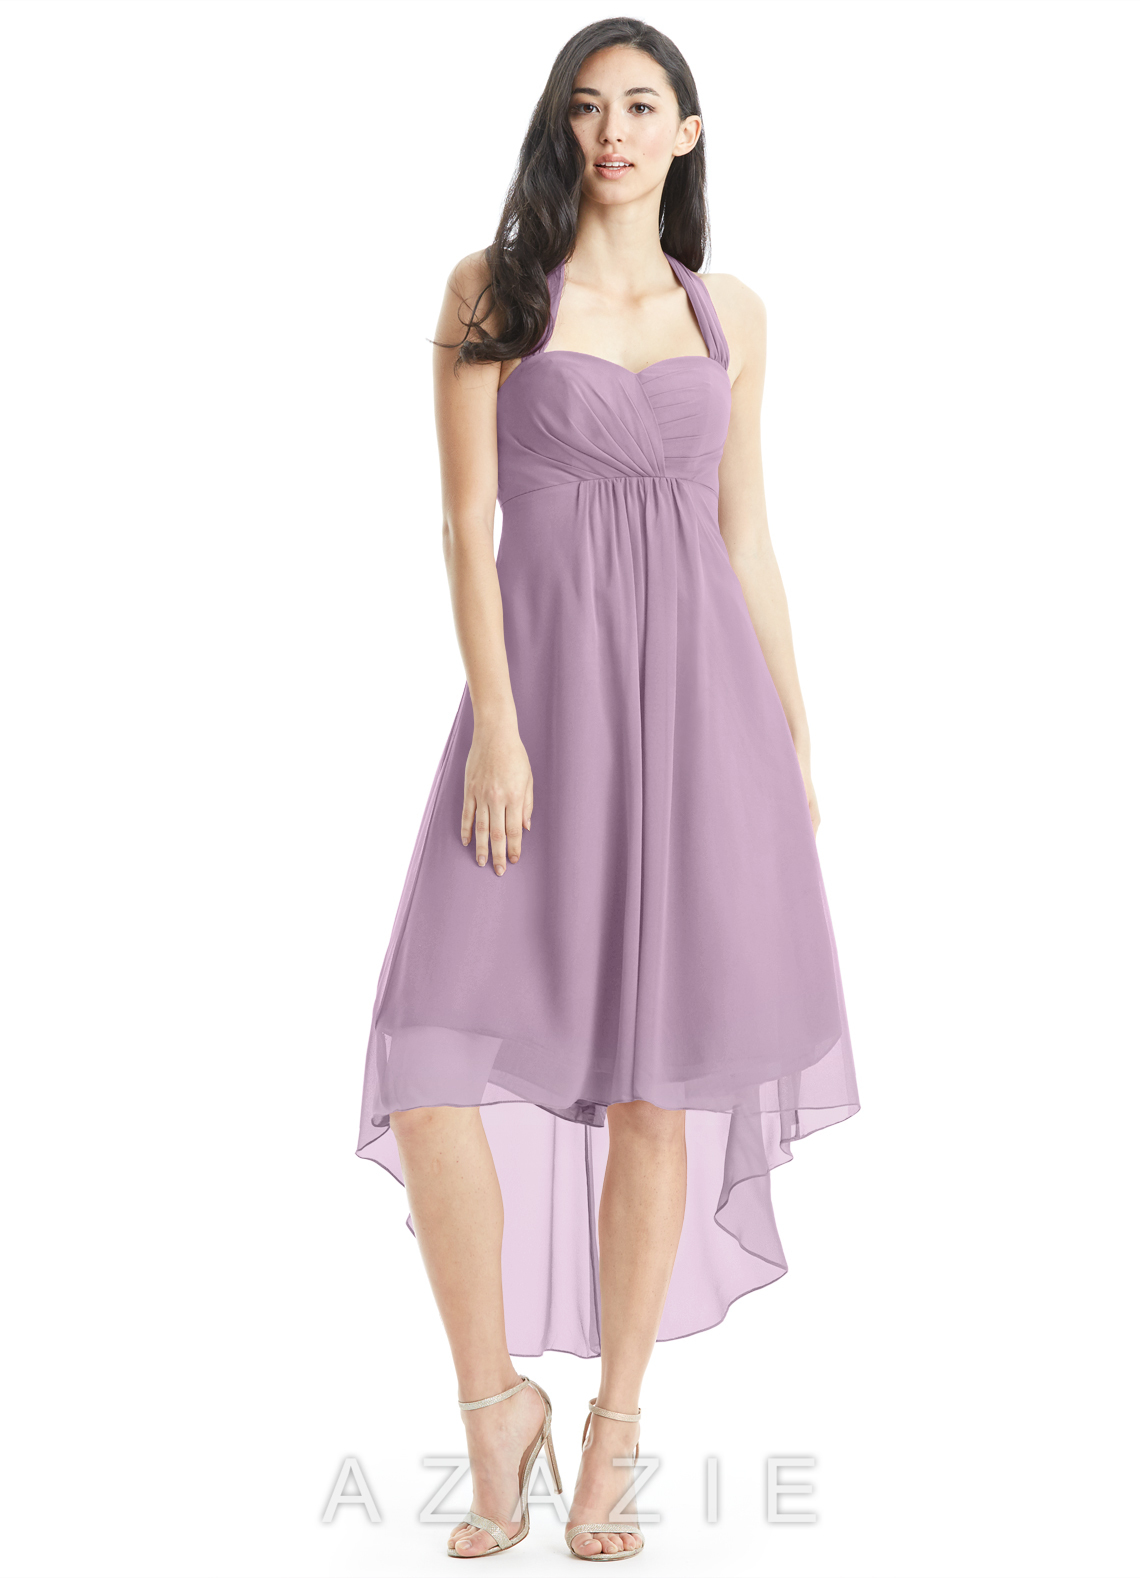 e65da357f65 Azazie Annabel Bridesmaid Dress